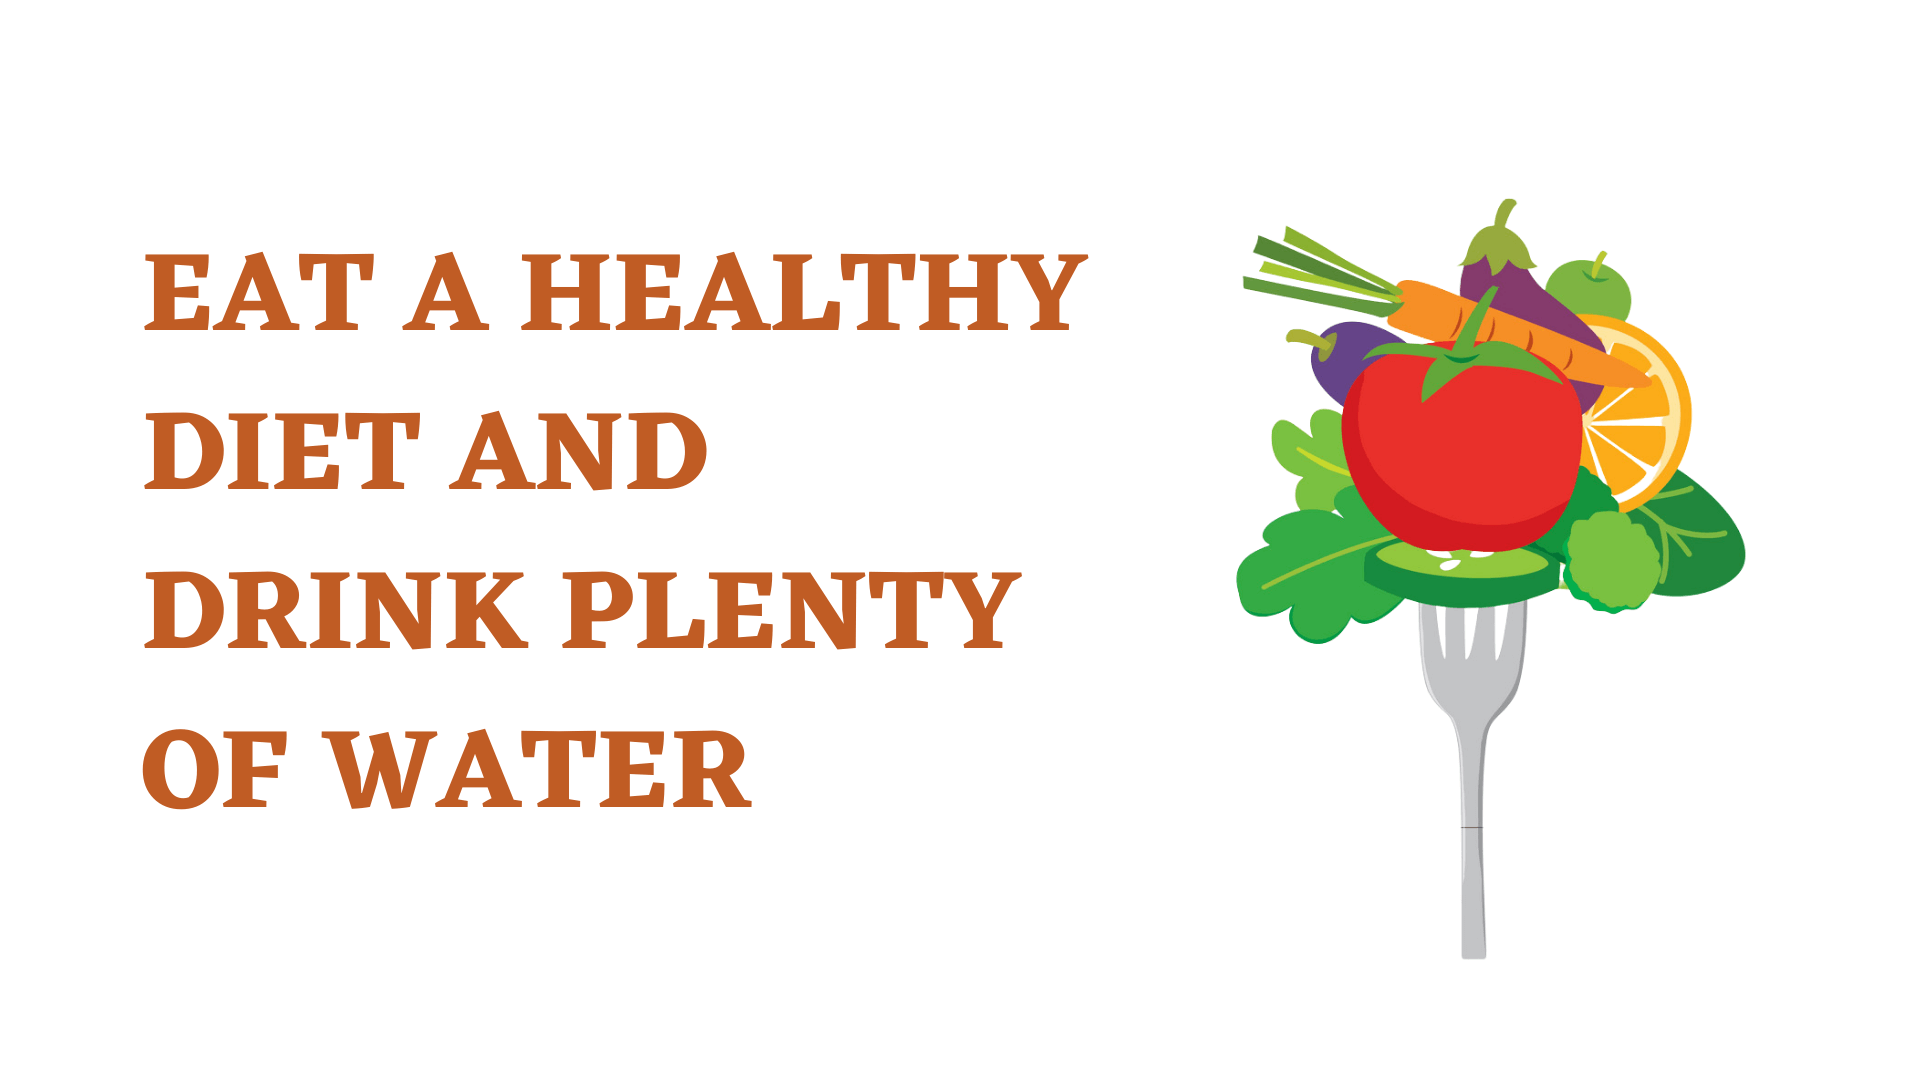 Eat a healthy diet and drink plenty of water